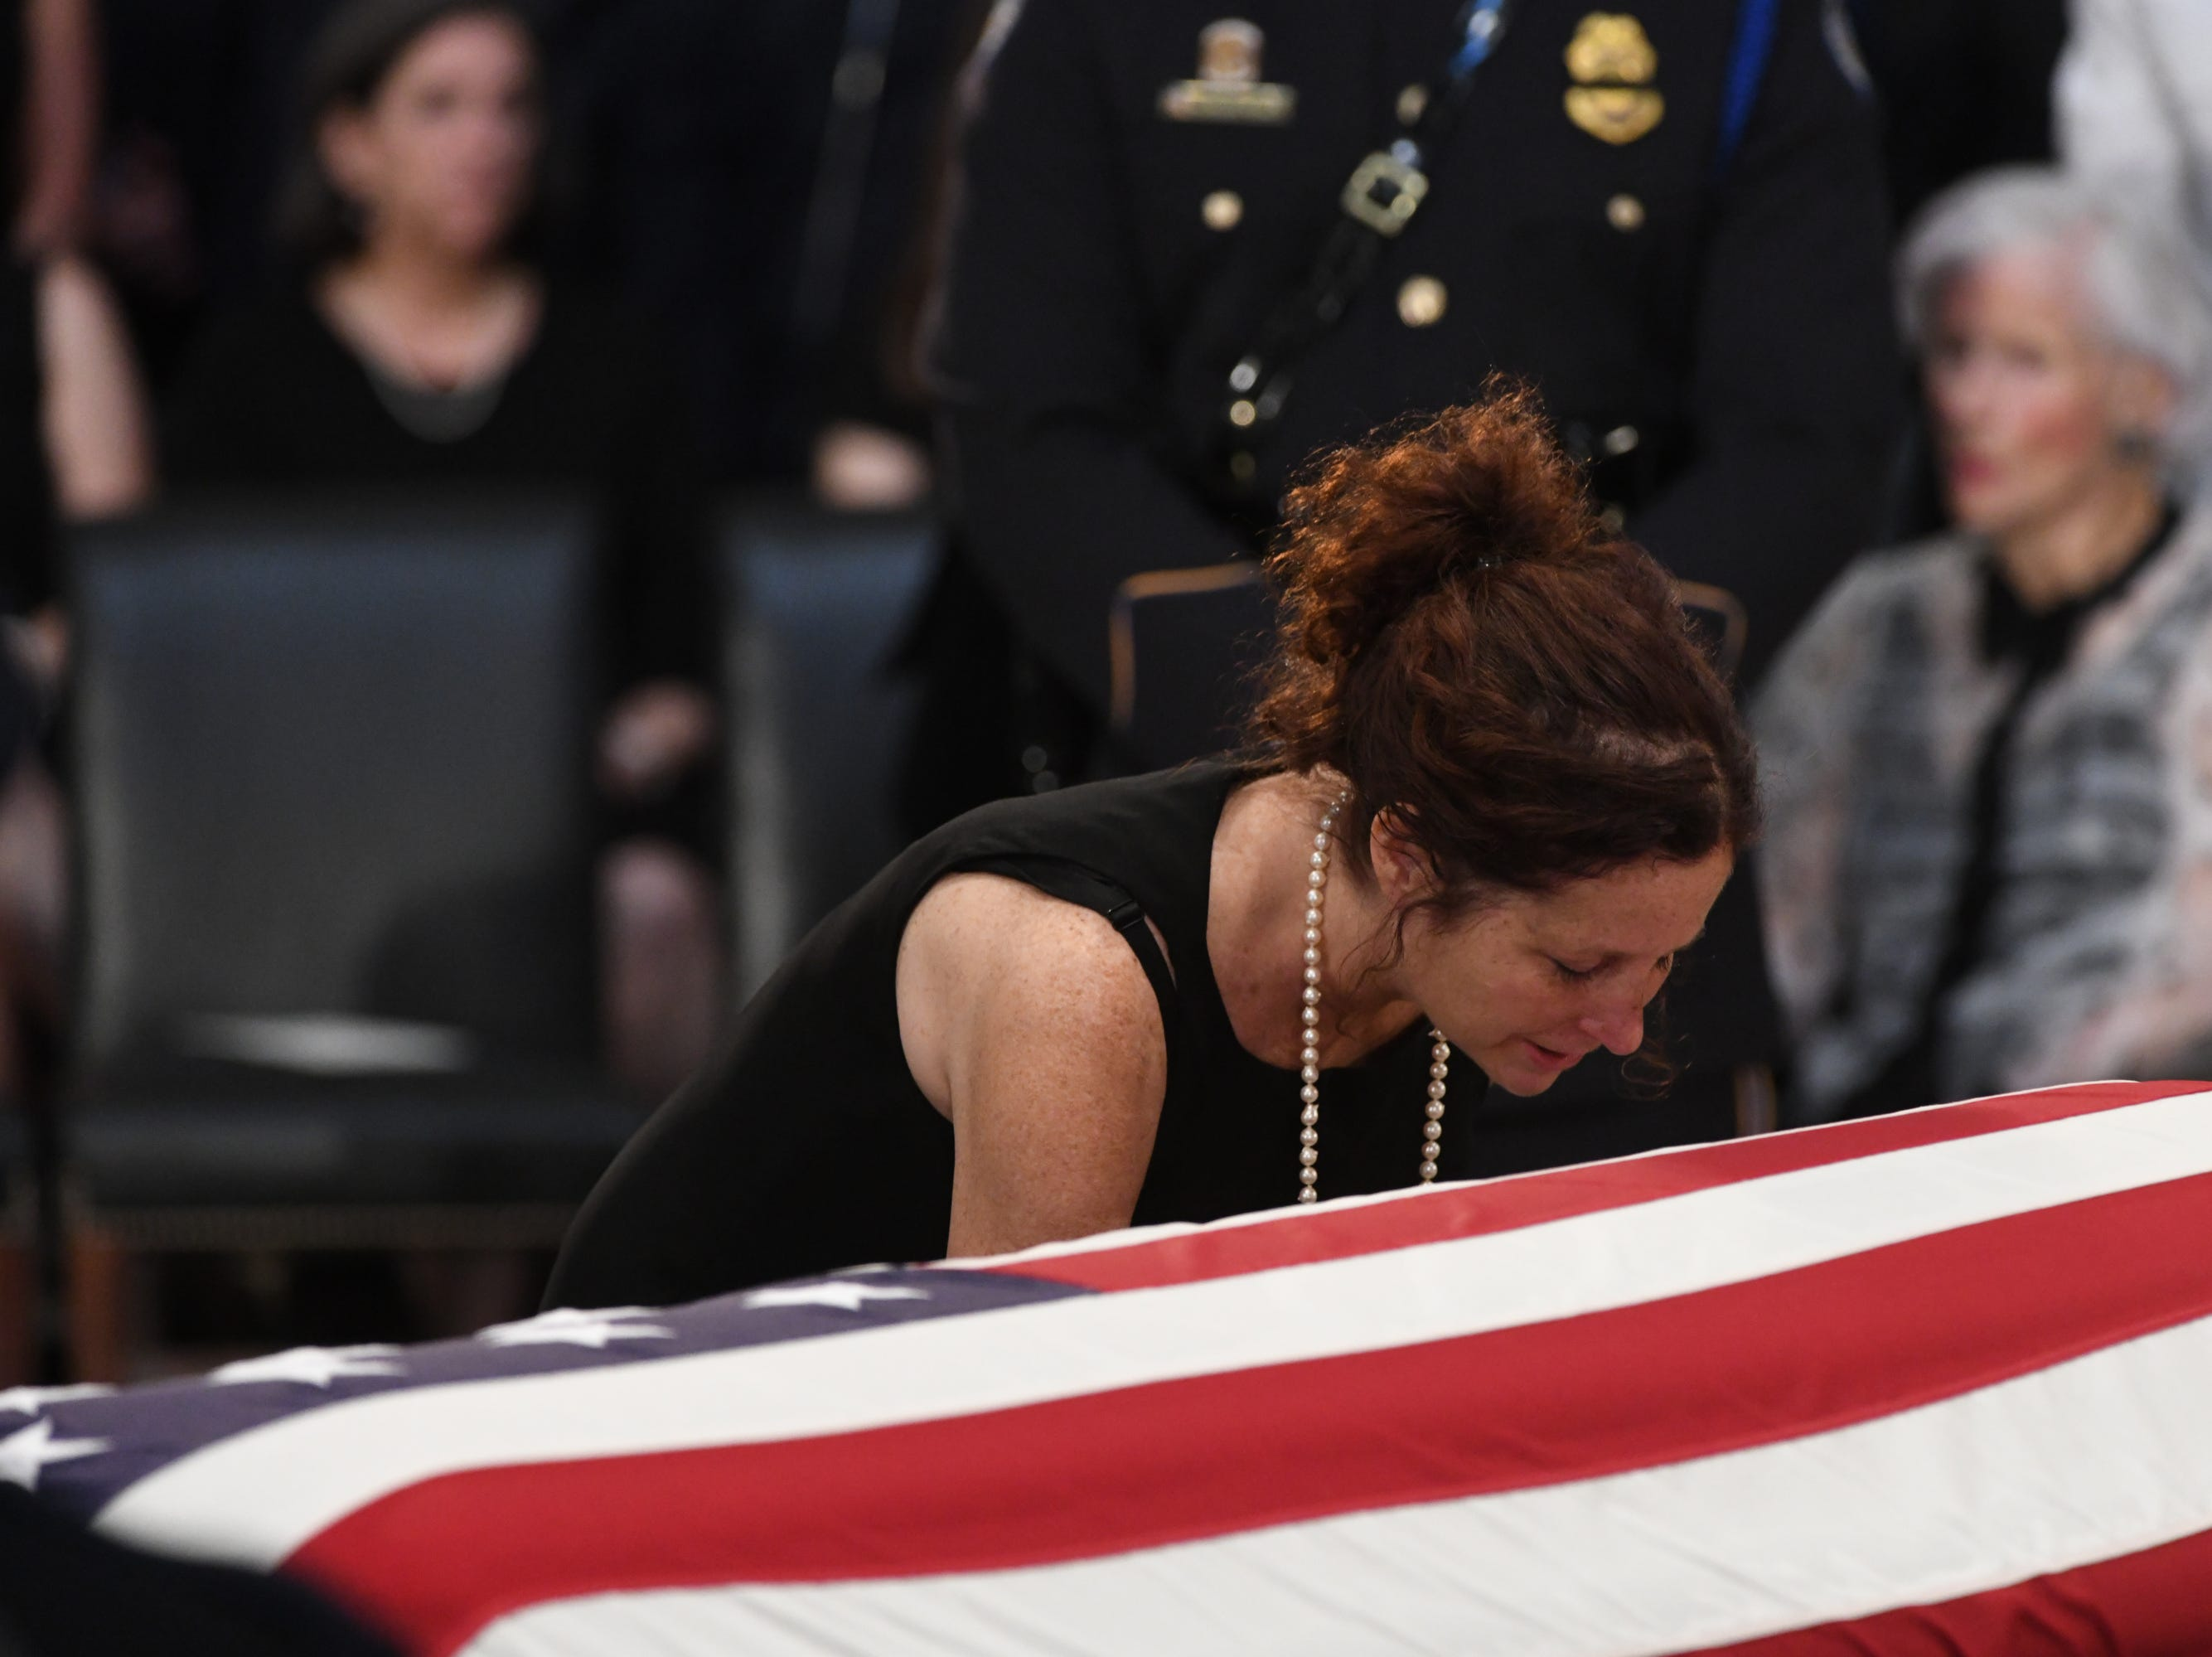 8/31/18 11:25:12 AM -- Washington, DC, U.S.A  -- Sidney McCain whisper to her father's casket as the body of John McCain lies in state at the U.S. Capitol in Washington on Aug. 31, 2018 in Washington. Sen. McCain died on Aug. 25. --    Photo by Jasper Colt, USA TODAY Staff